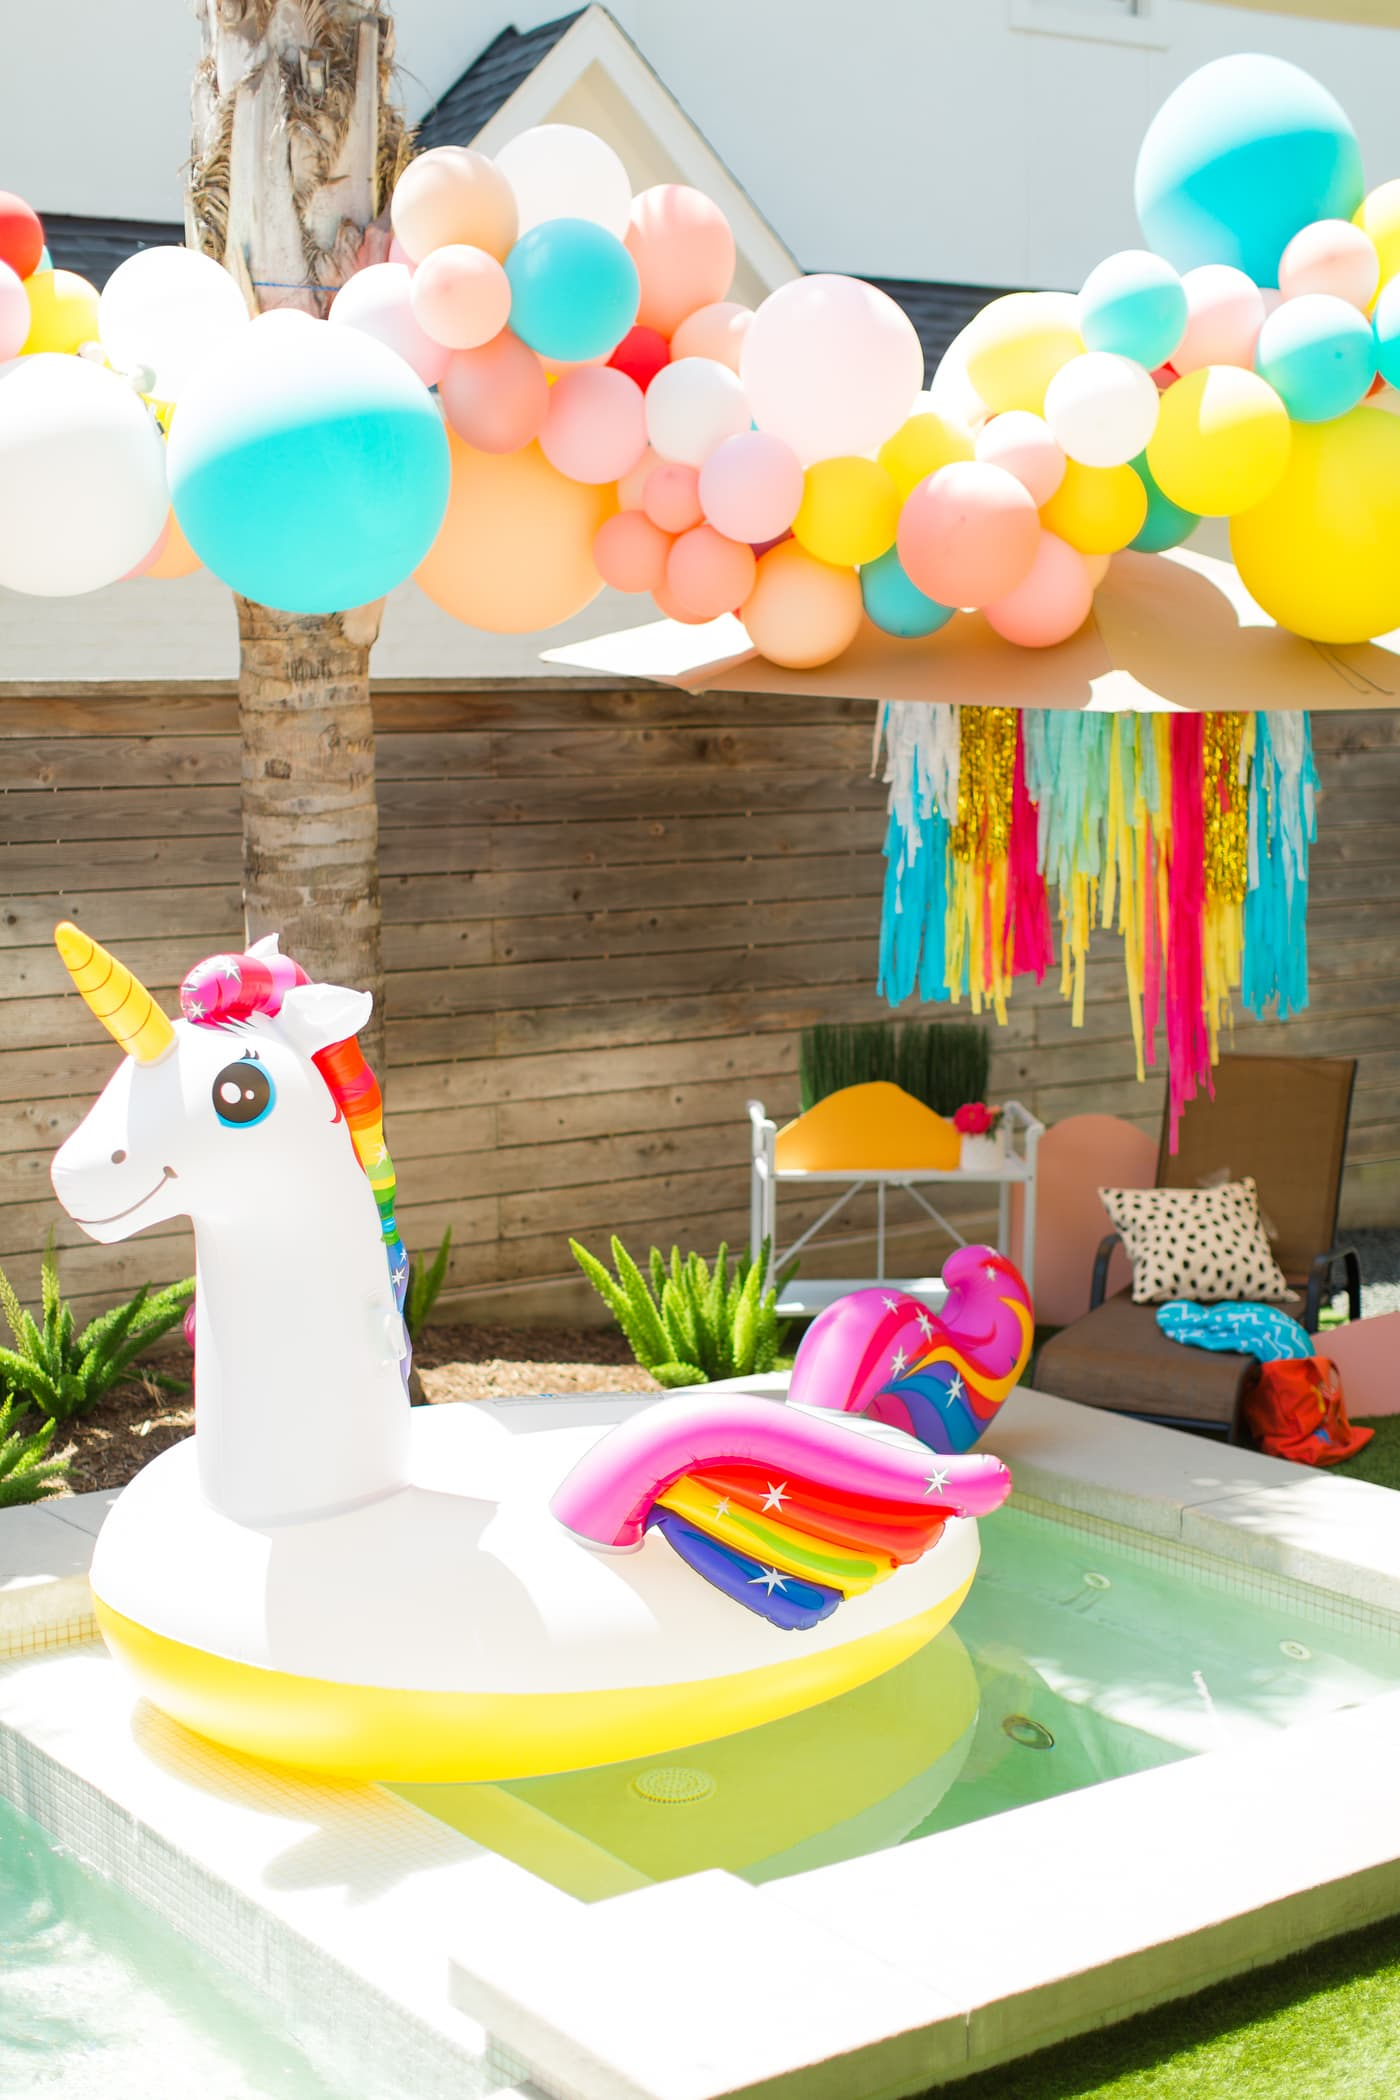 Our Summer Pool Party with ALDI!